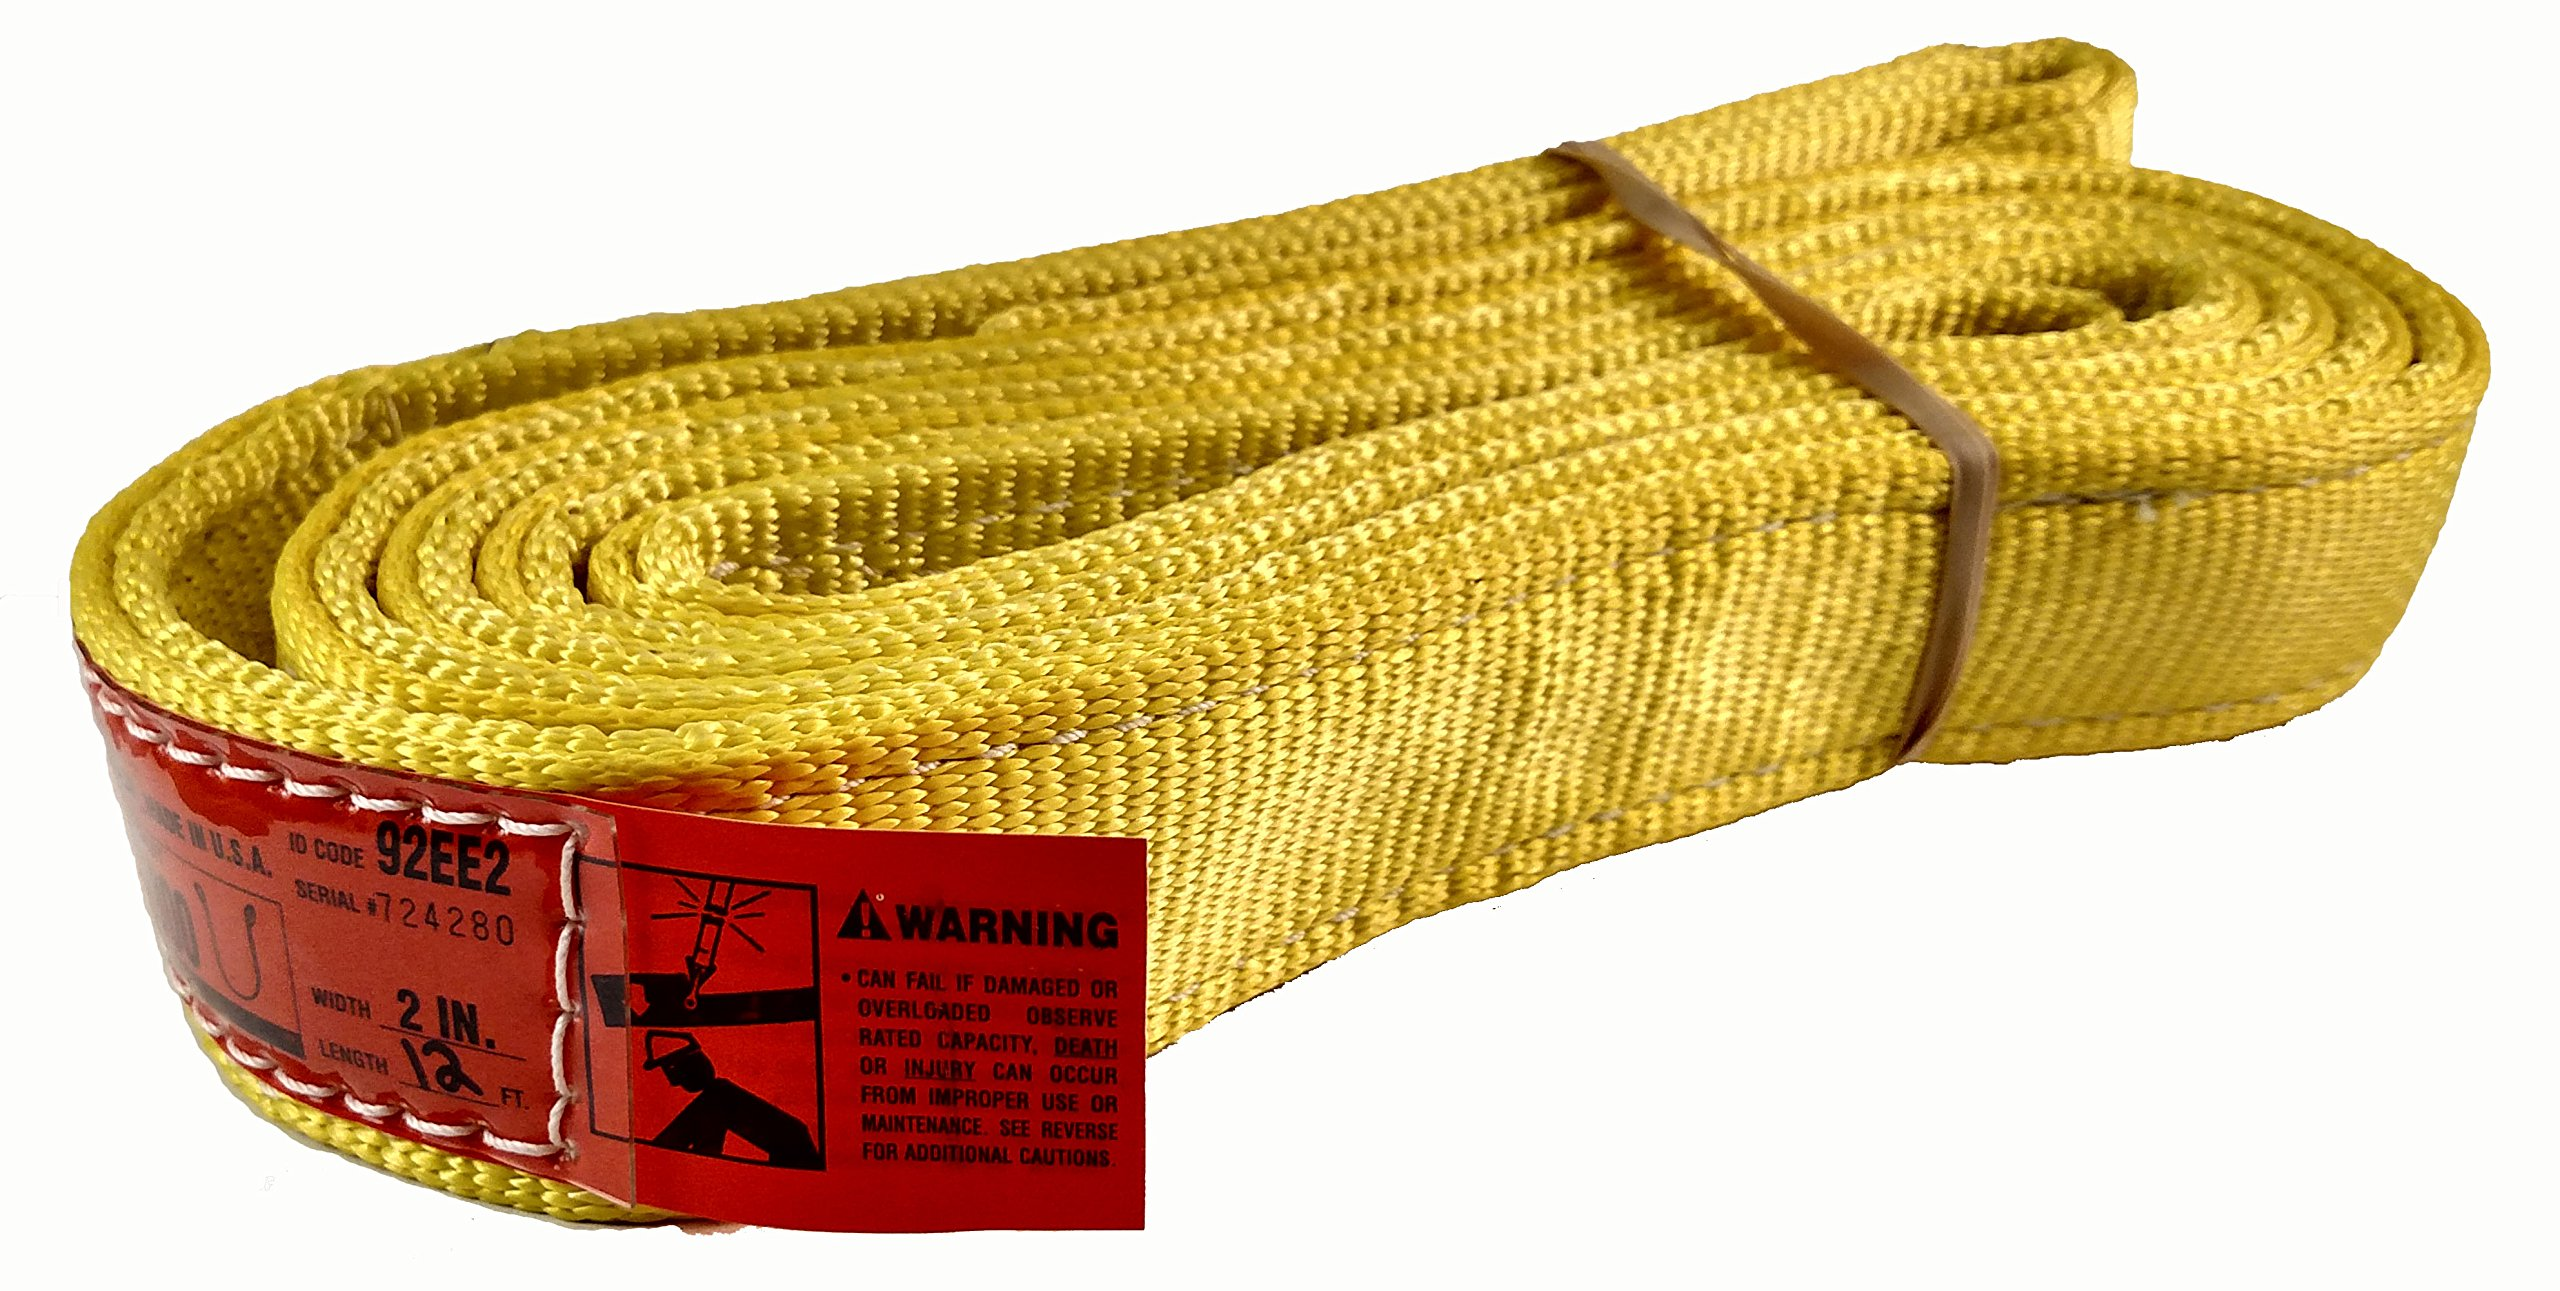 DD Sling (USA Made). 2'' wide X (4' to 20' lengths) in Listing! 2 Ply Twisted Eye, Nylon Lifting Slings, Eye & Eye, Heavy Duty (900 webbing), 6,400 lbs Vertical, 5,100 Choker, 12,800 Basket Load Capacity (2inX12ft)